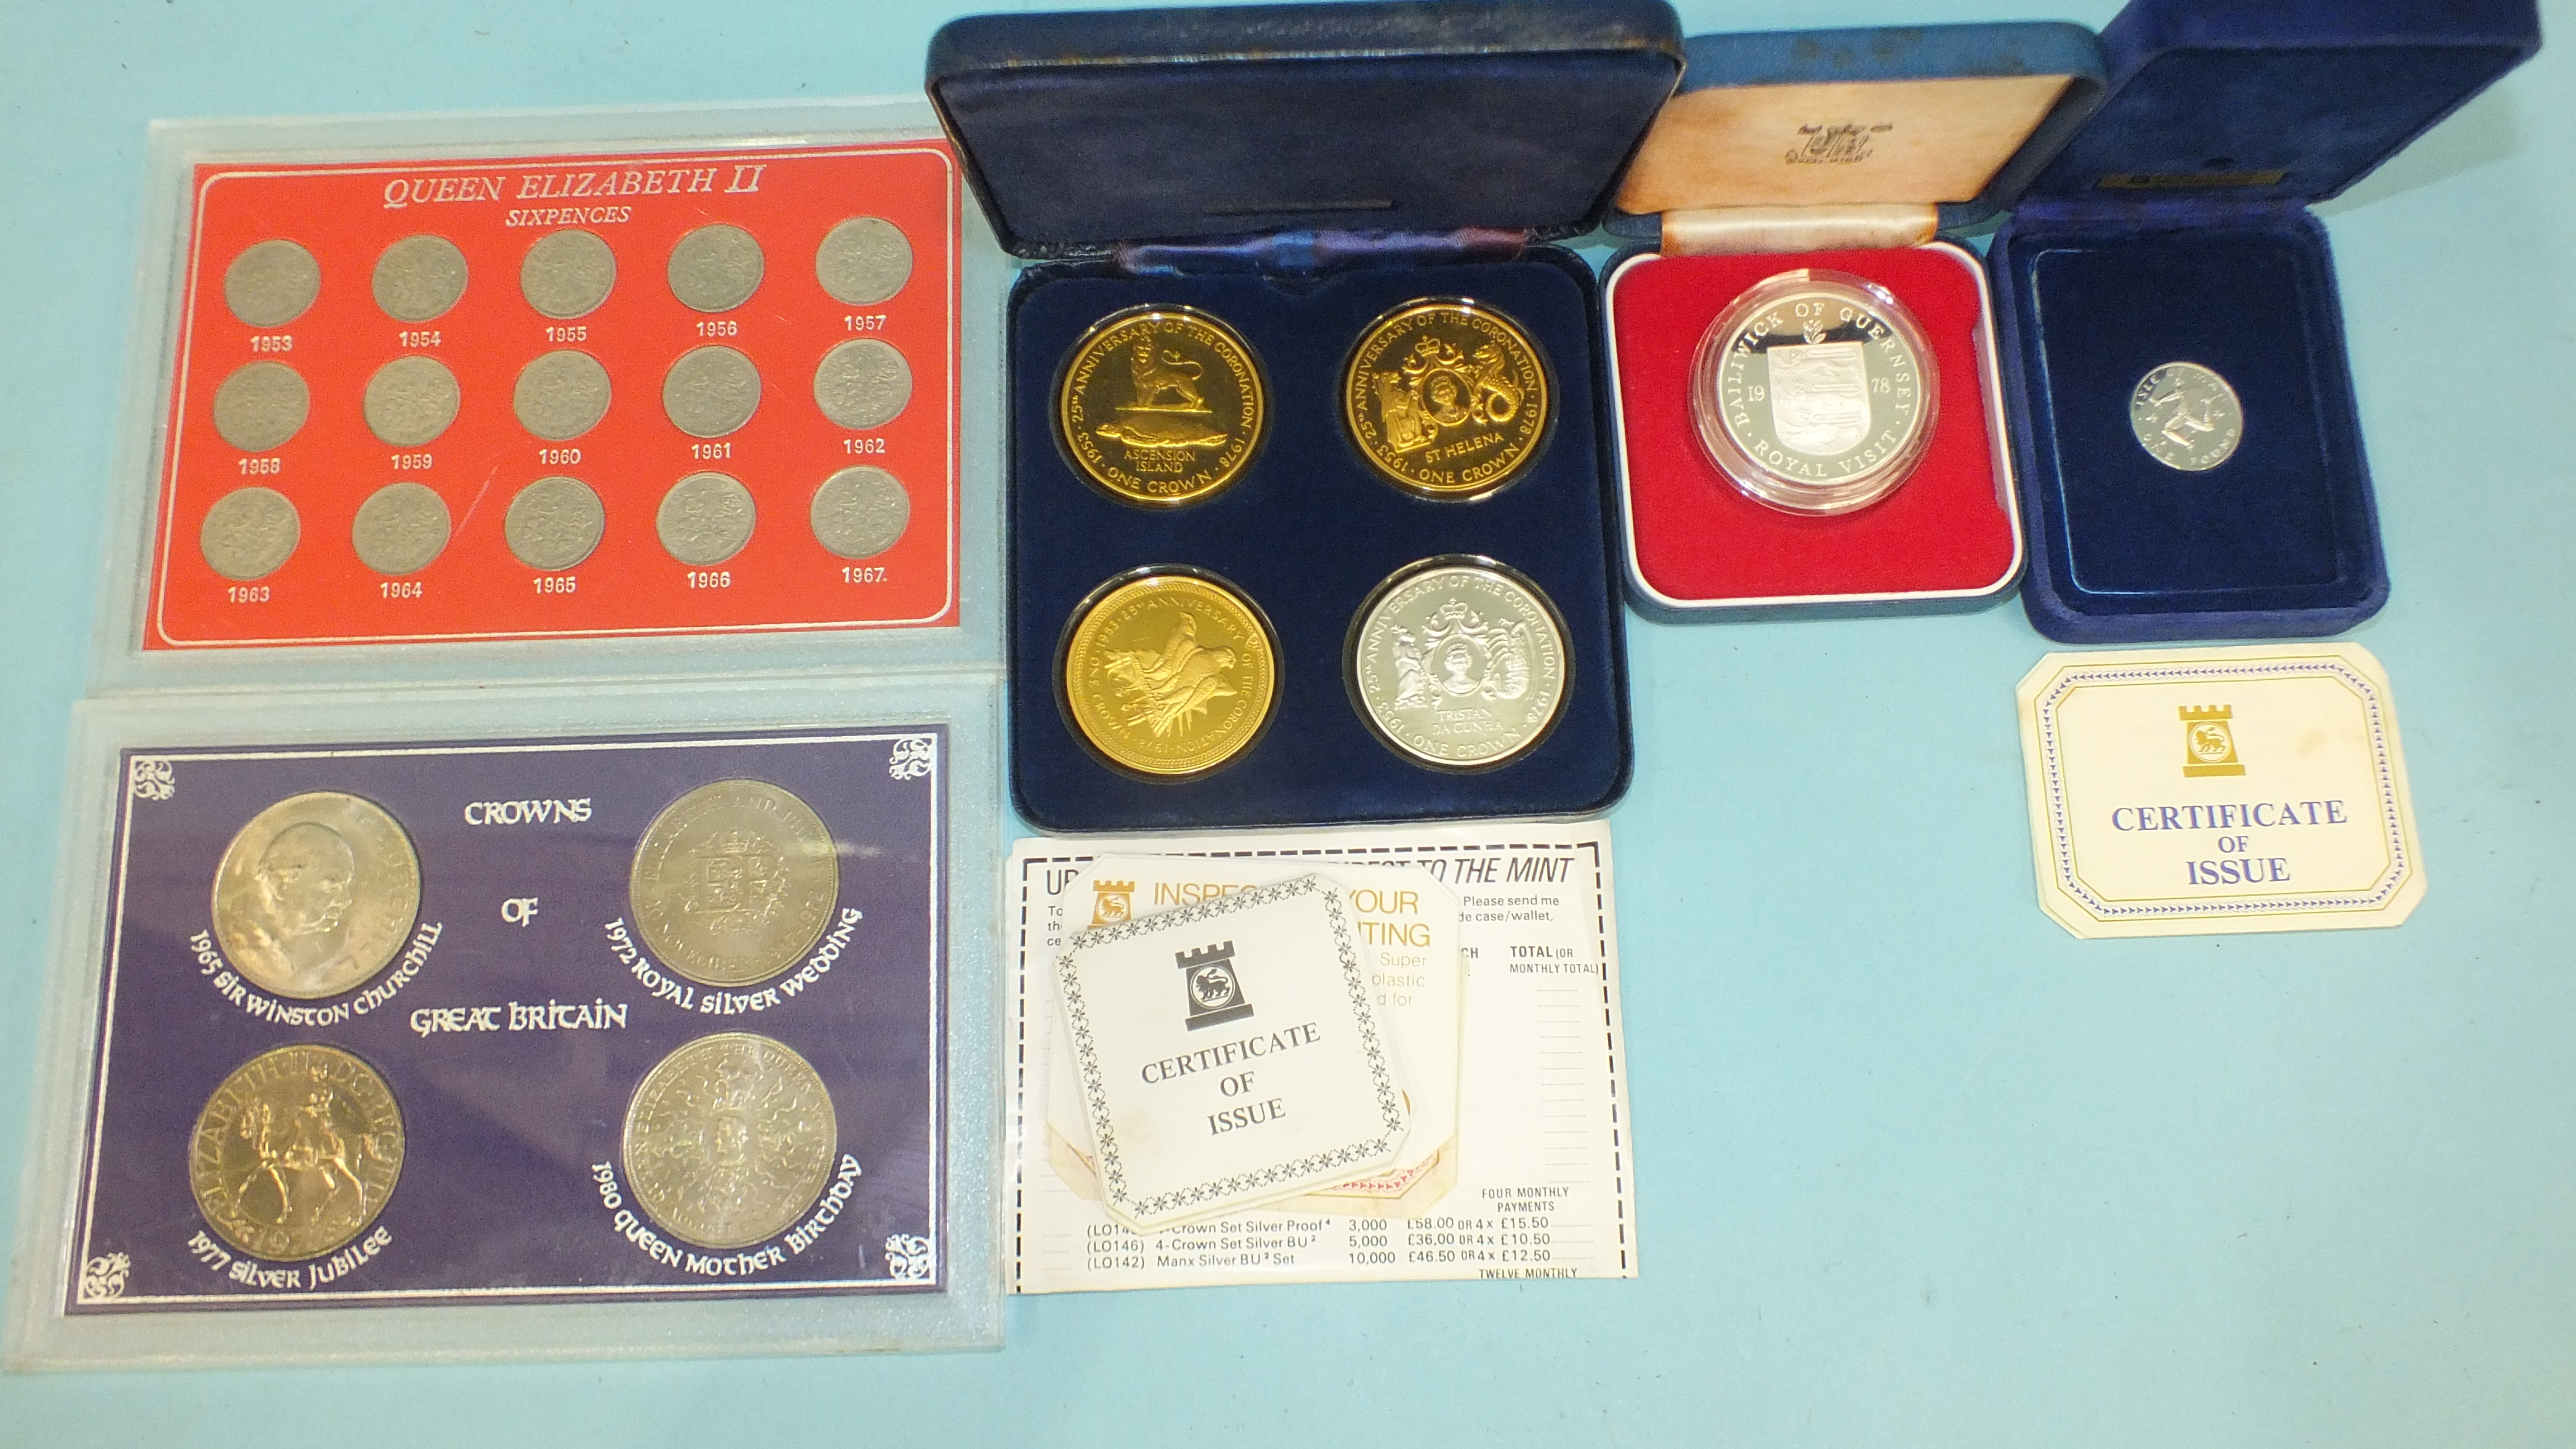 A Pobjoy Mint sterling silver three-coin 'South Atlantic Group' set, together with an Isle of Man